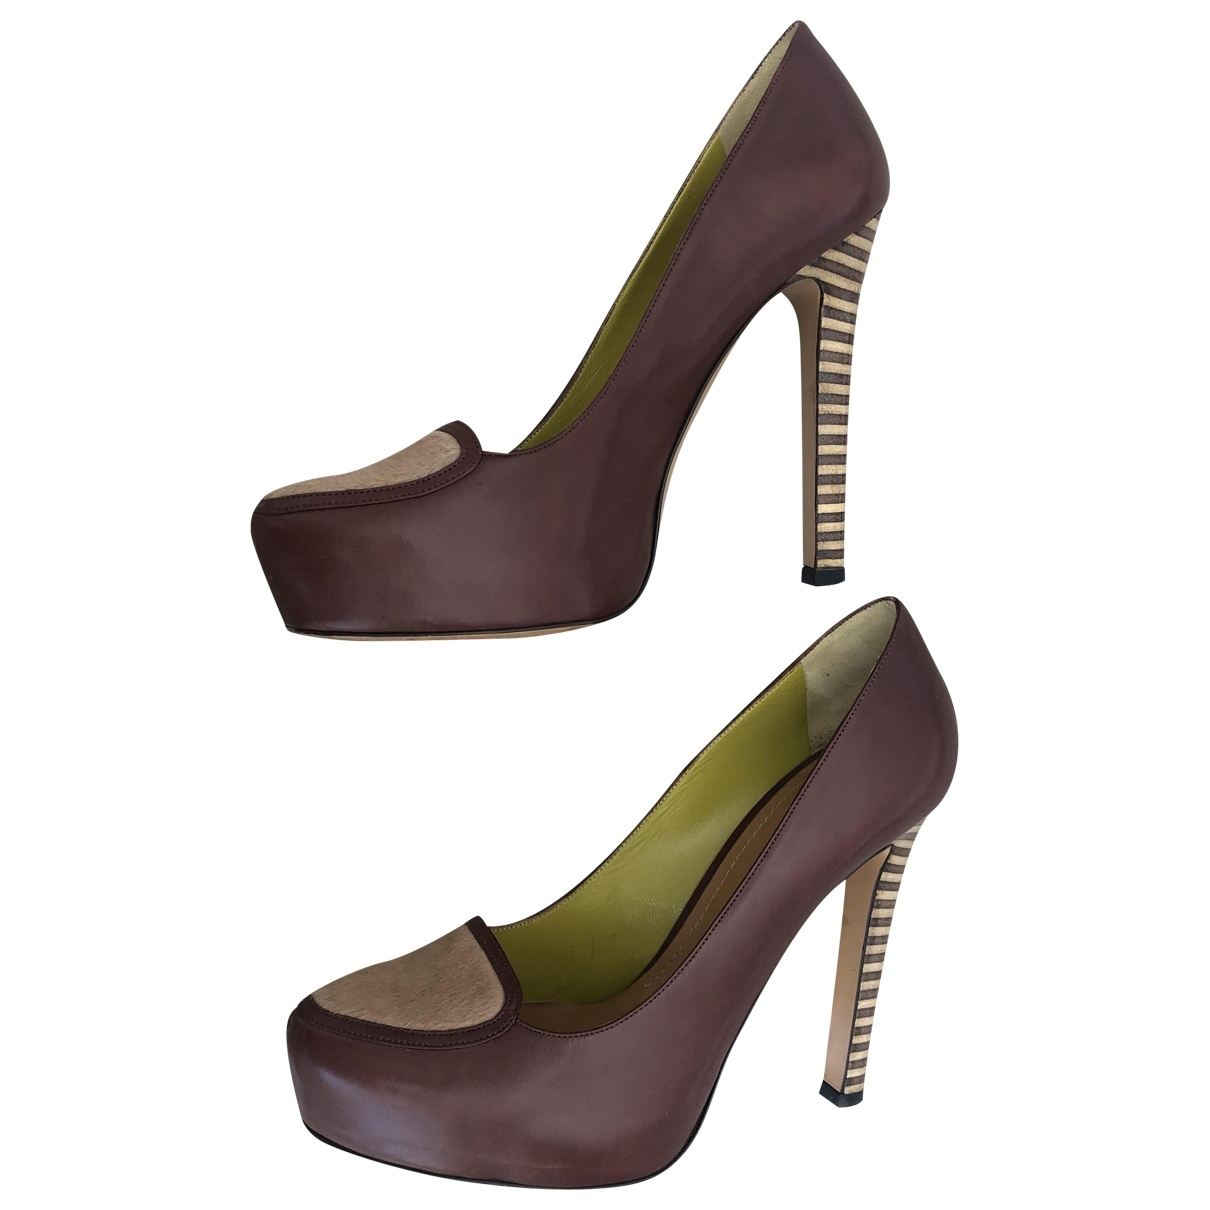 Pollini \N Brown Leather Heels for Women 40 IT